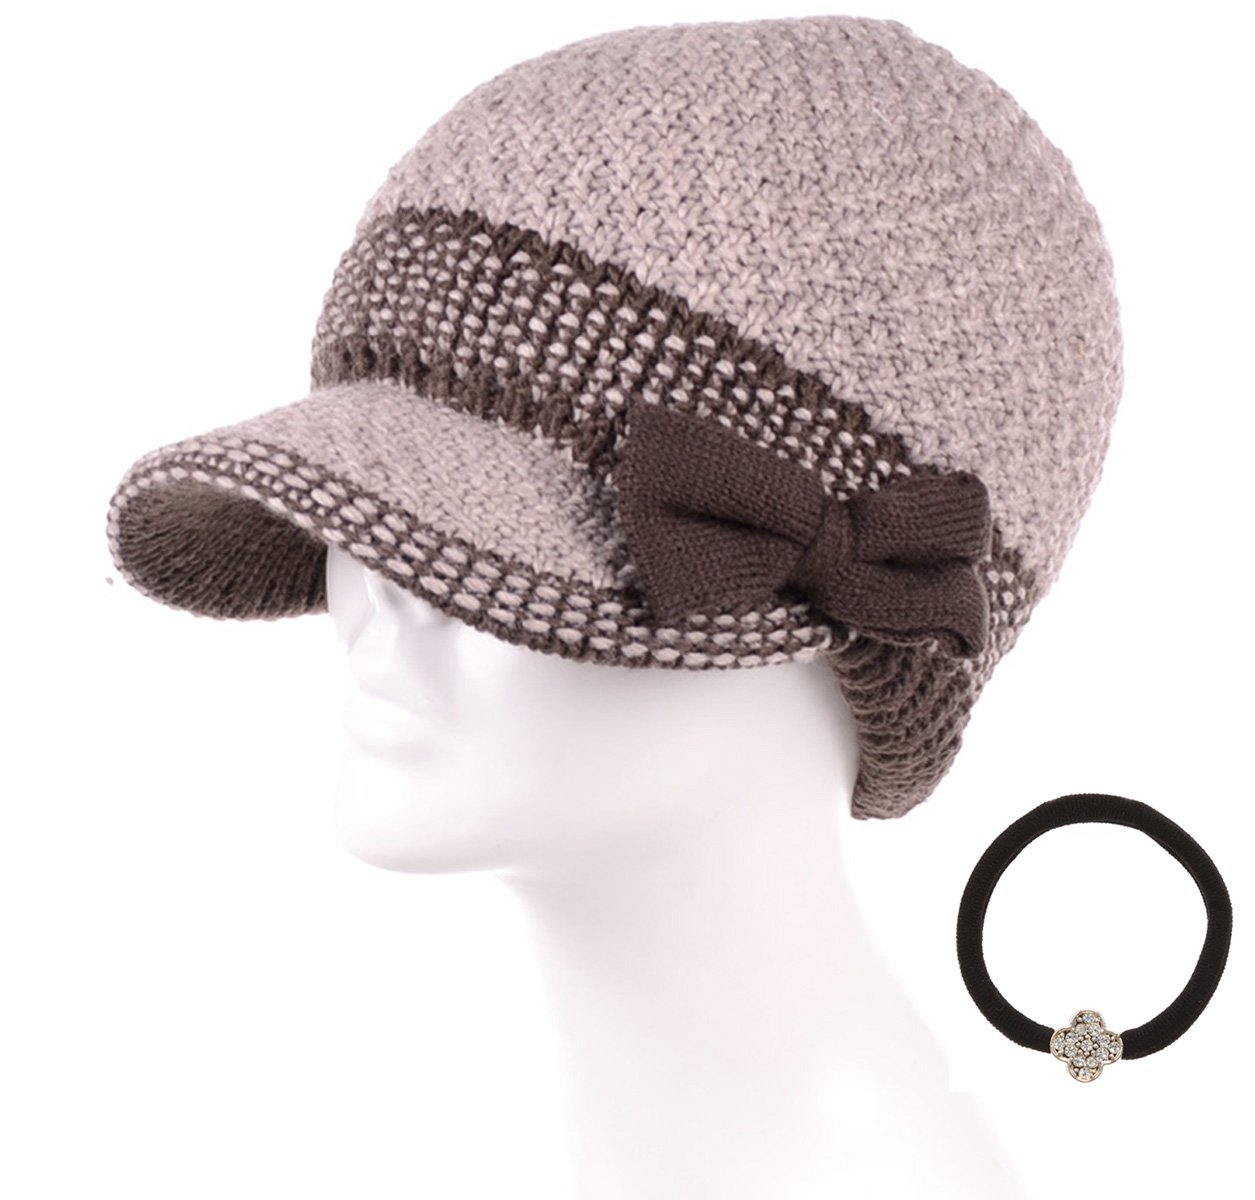 89387ee8690 MIRMARU Women s Winter Cable Knitted Beret Visor Beanie Hat with Scrunchy.  product image